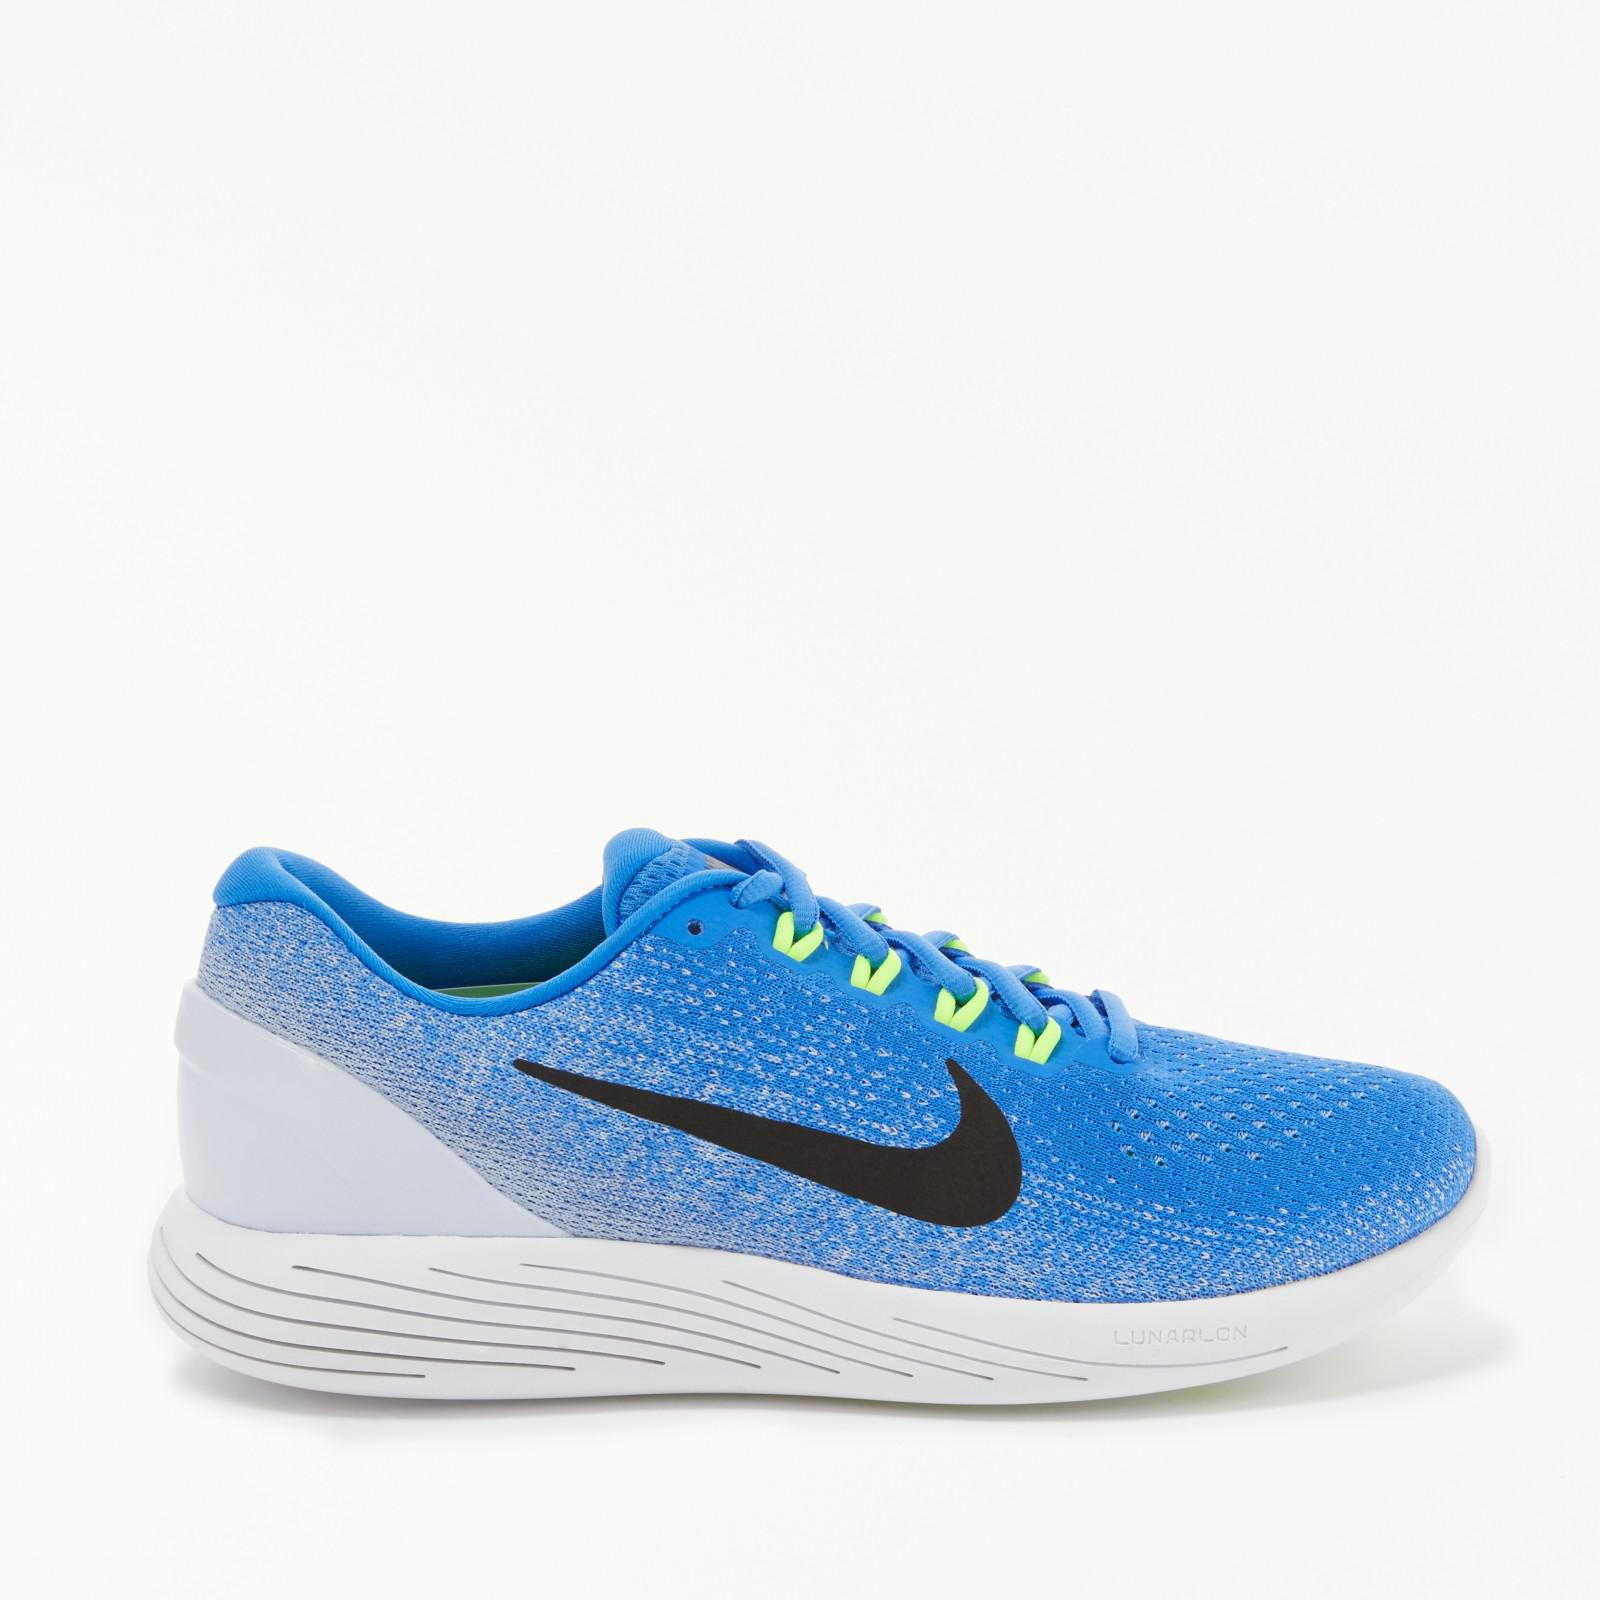 best sneakers 3c0fb 3f2fb Nike Lunarglide 9 Men s Running Shoes in Blue for Men - Lyst